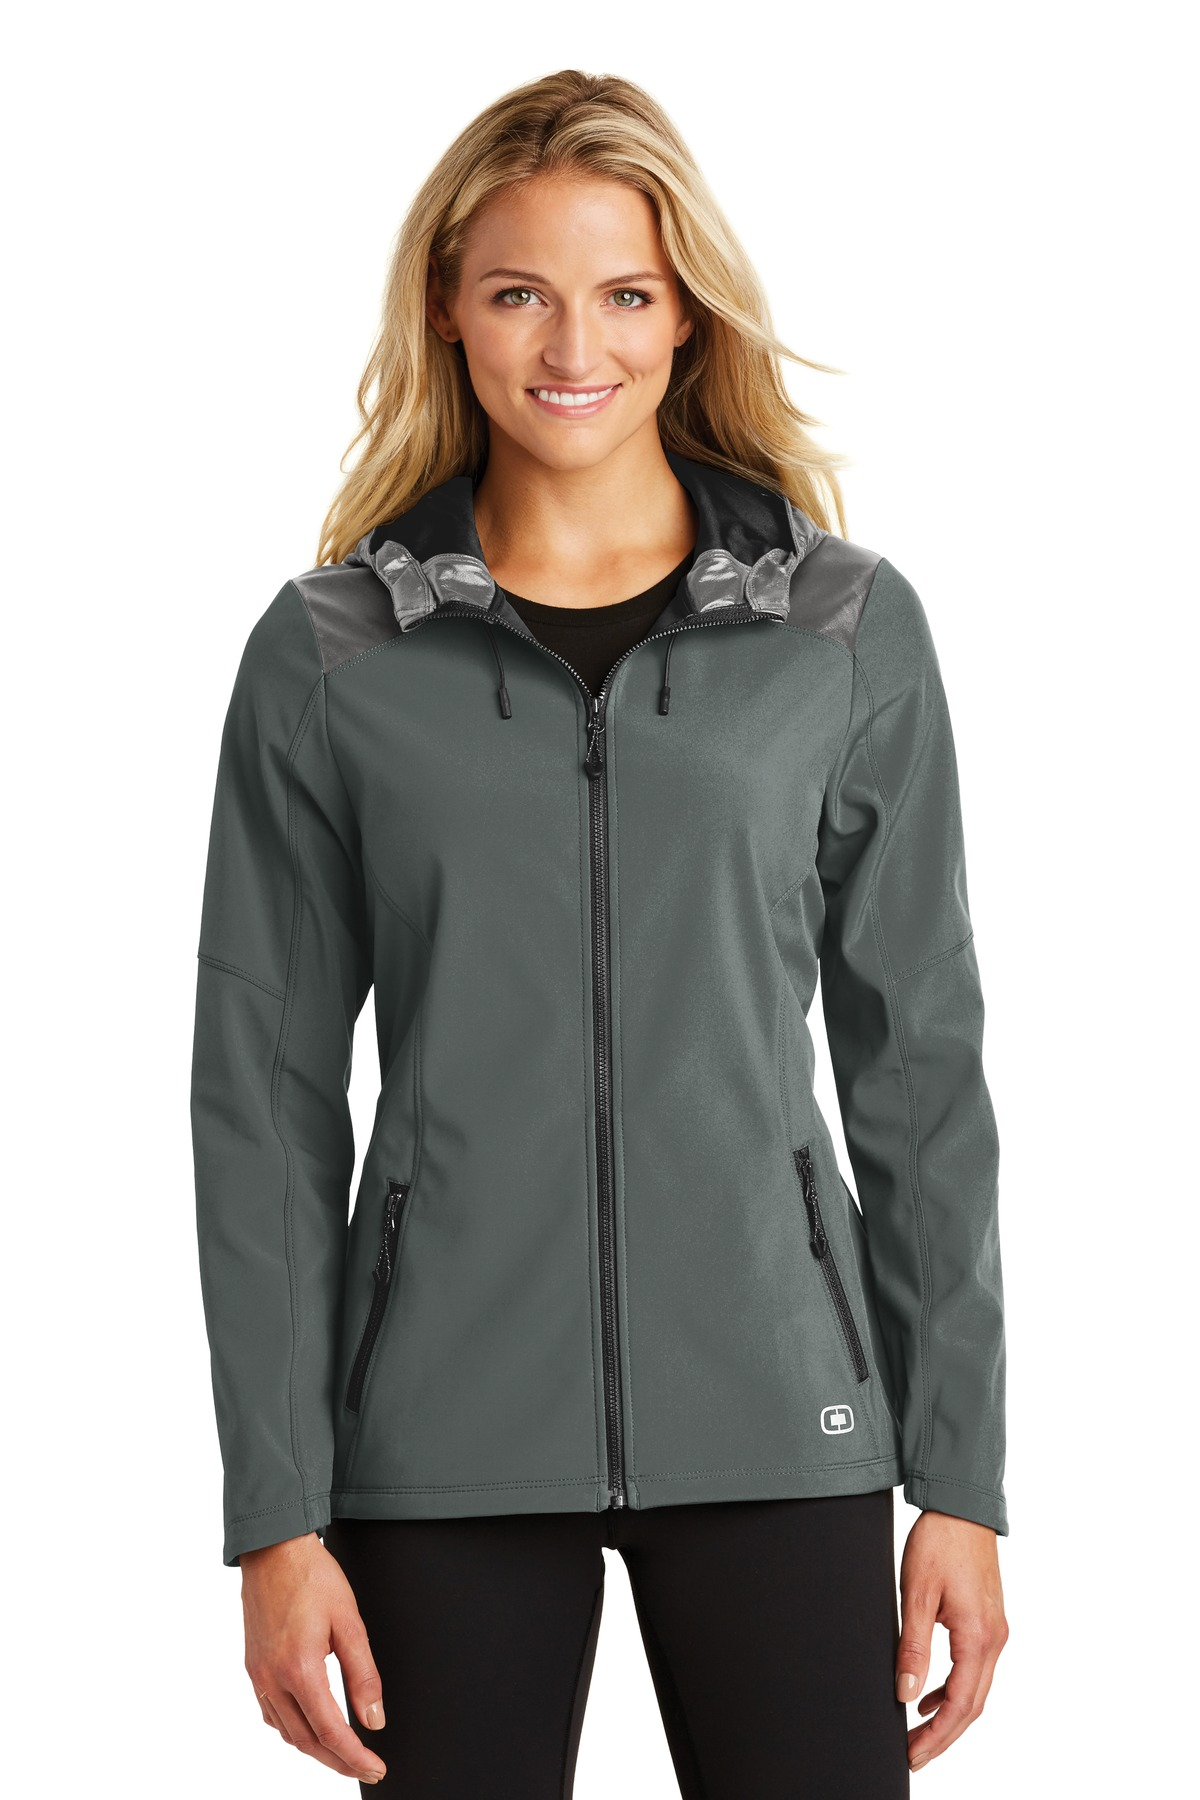 OGIO ENDURANCE Ladies Liquid Jacket. LOE723